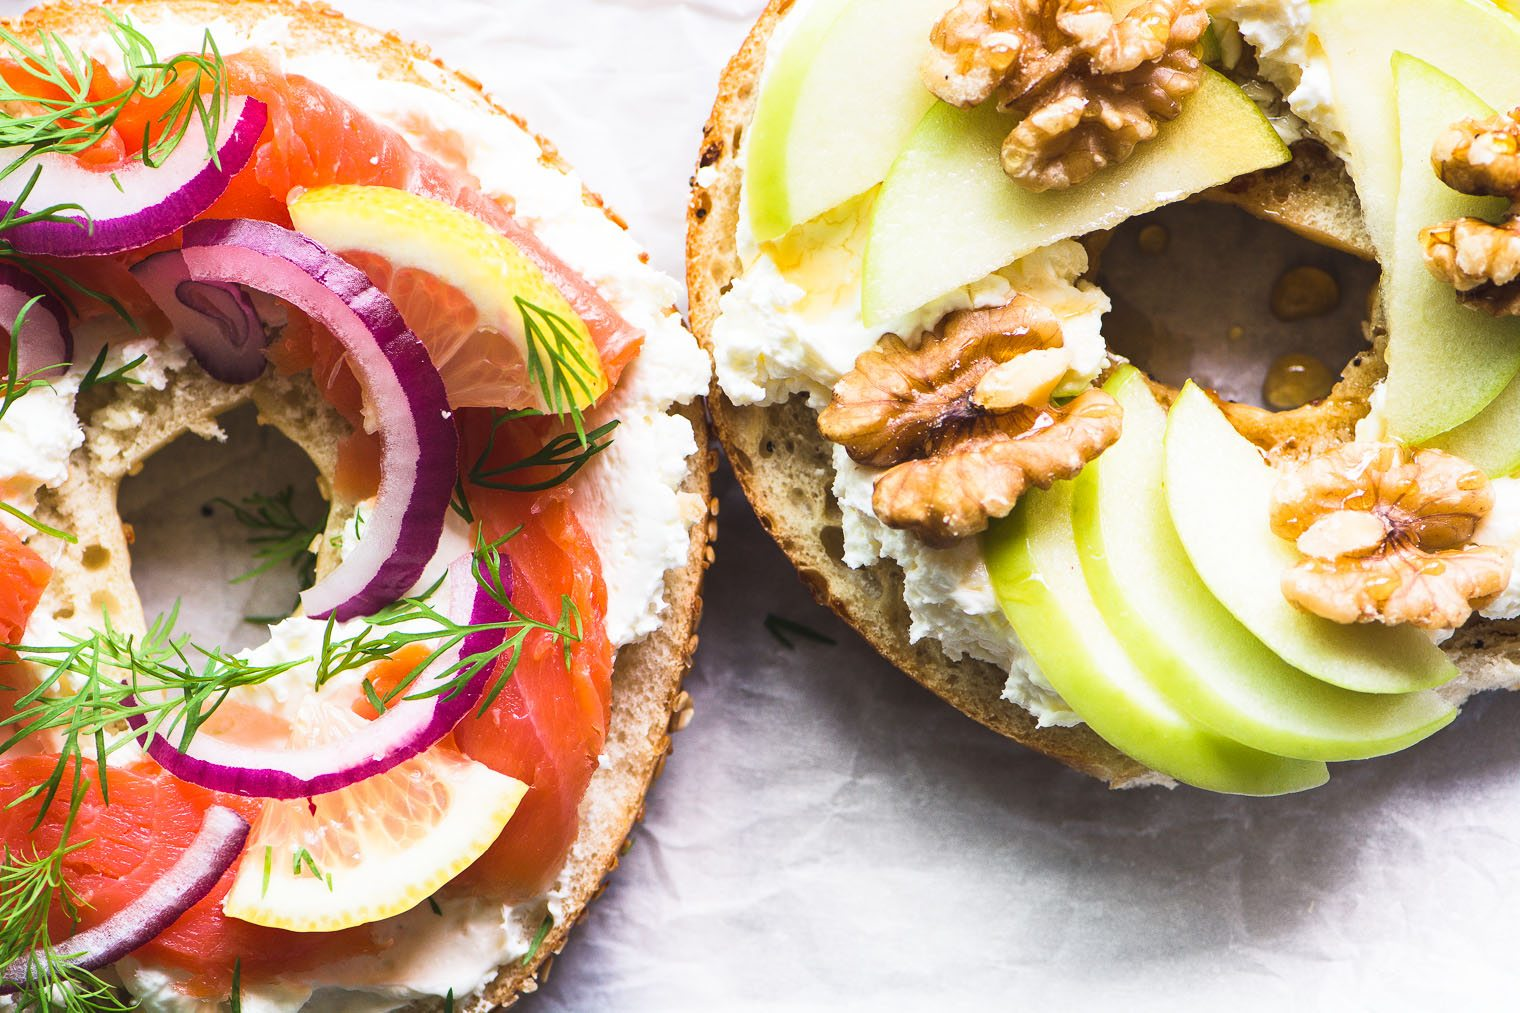 Irresistible Bagel Toast (your new favorite snack!) Bagel halves topped with colorful toppings